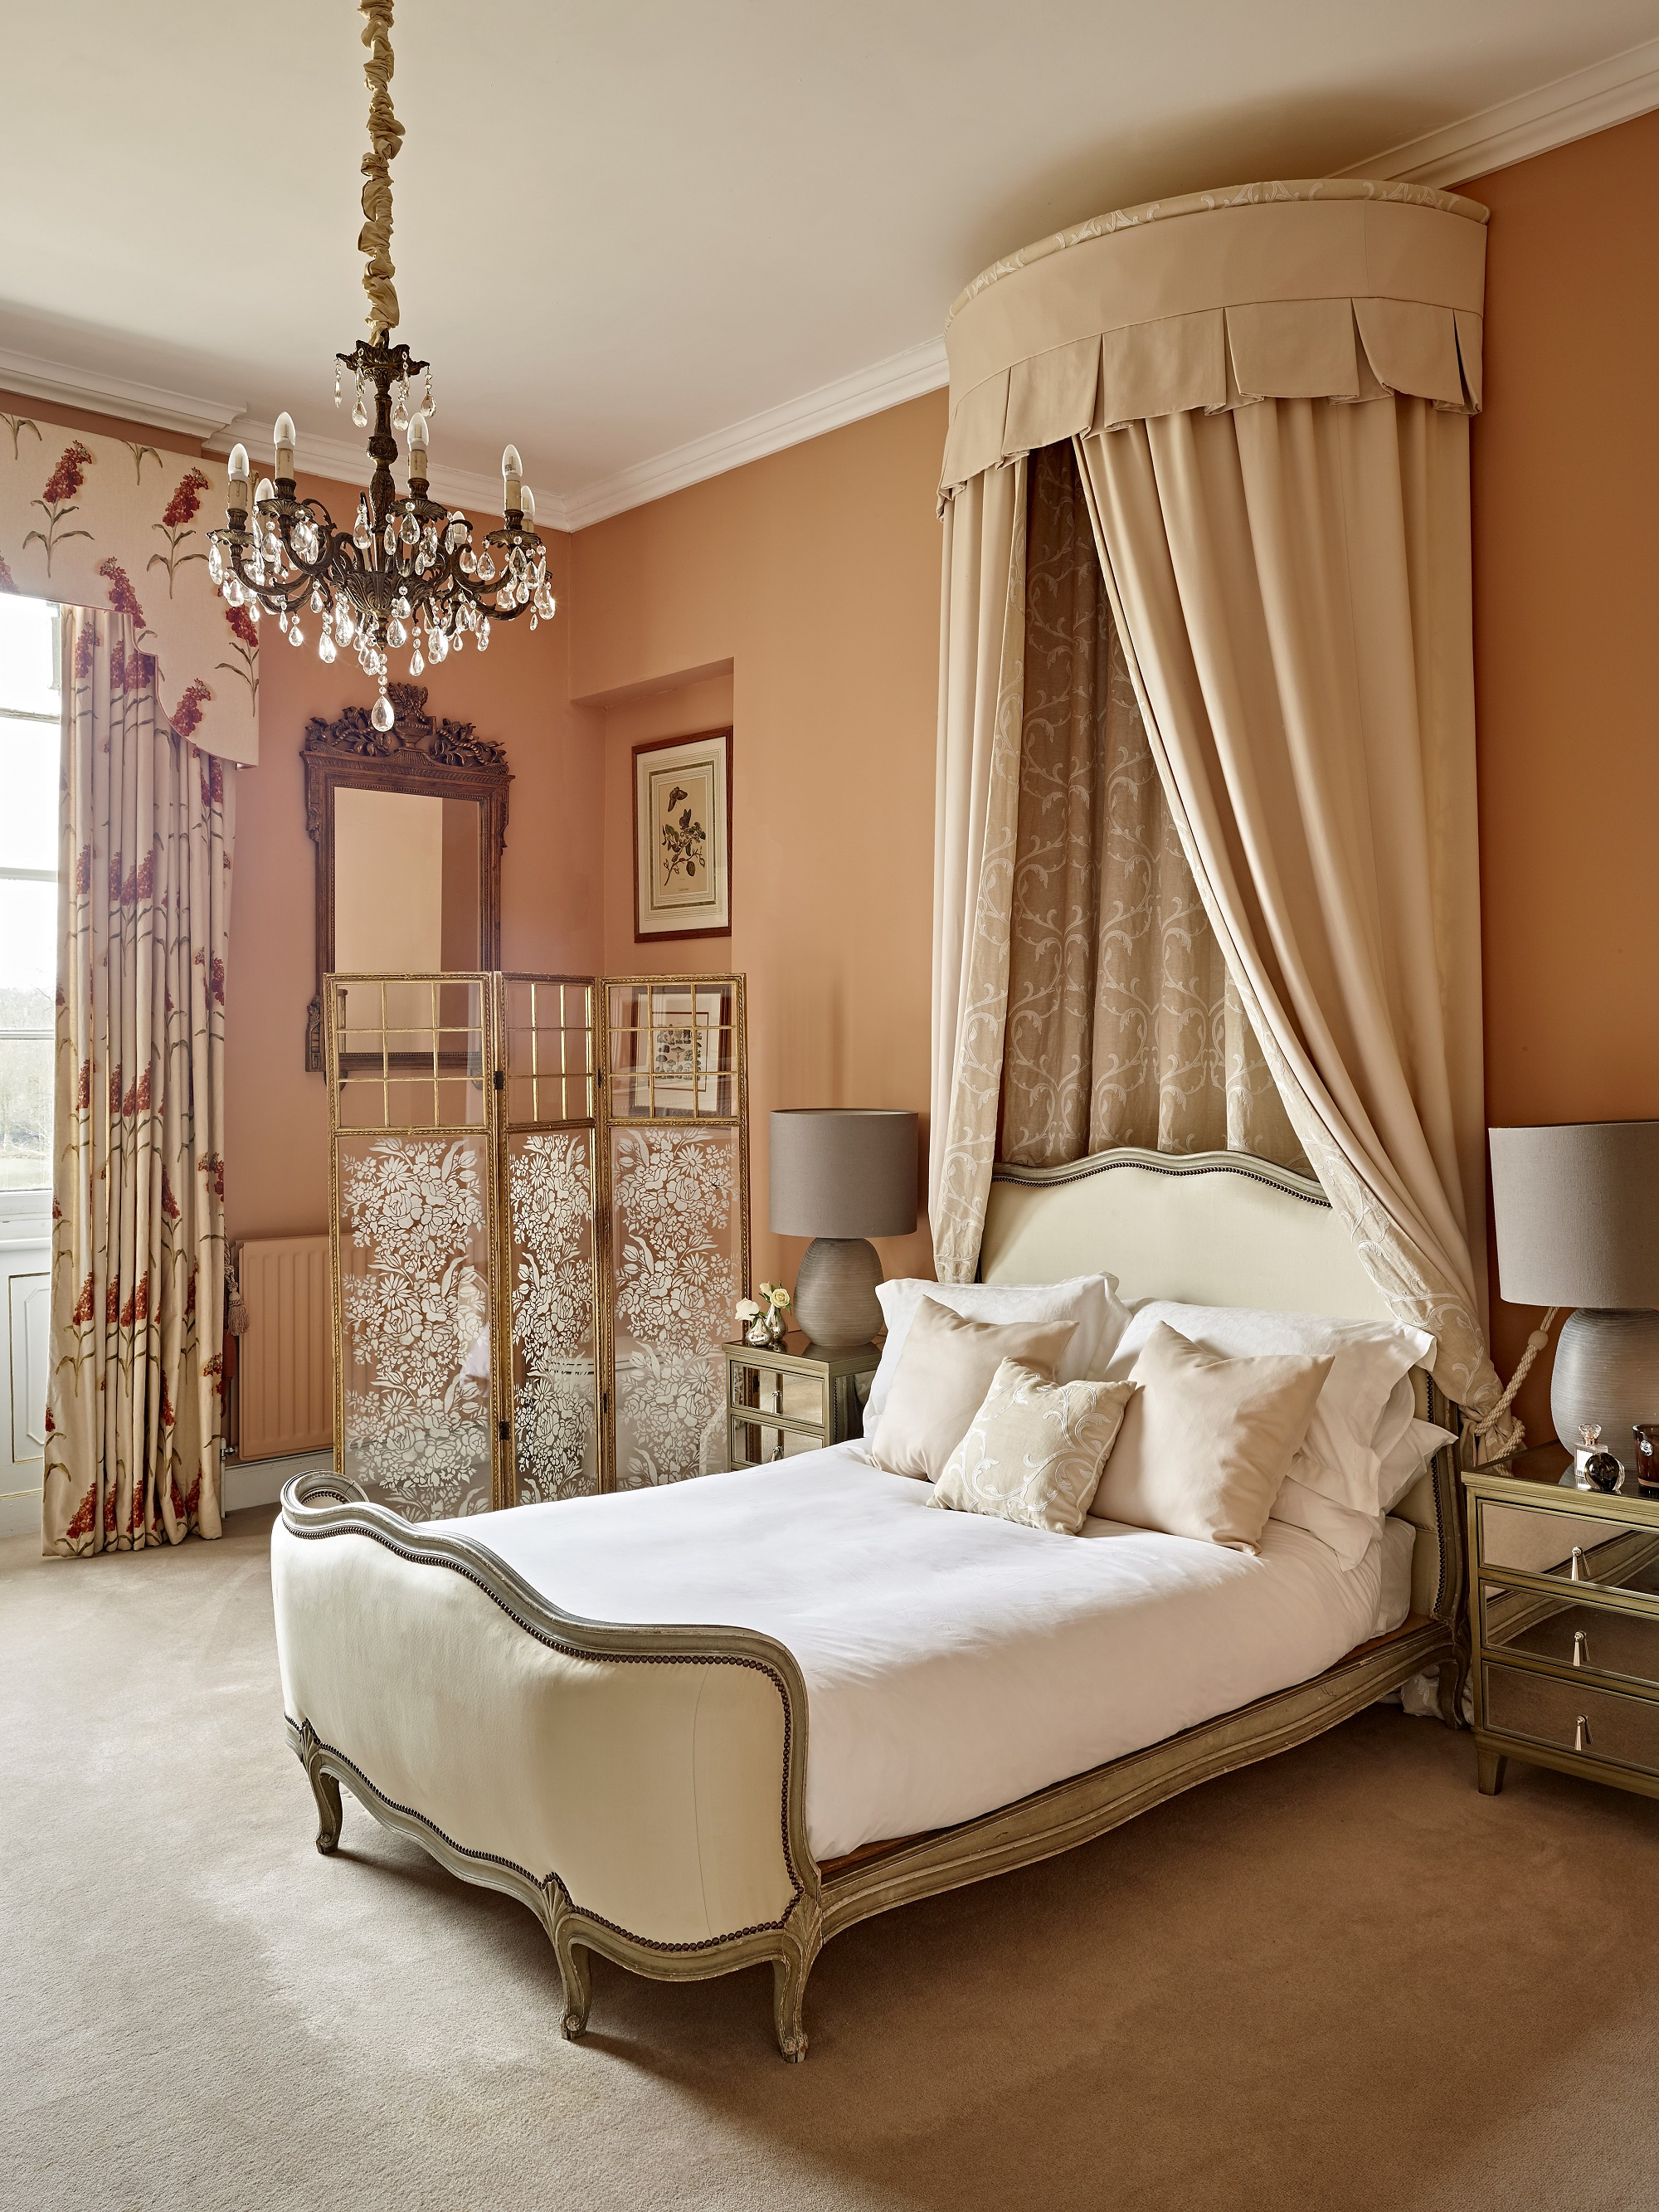 Bedroom Designs Latest 2018 2018 Colour Trends For Every Room In The Home The Luxpad